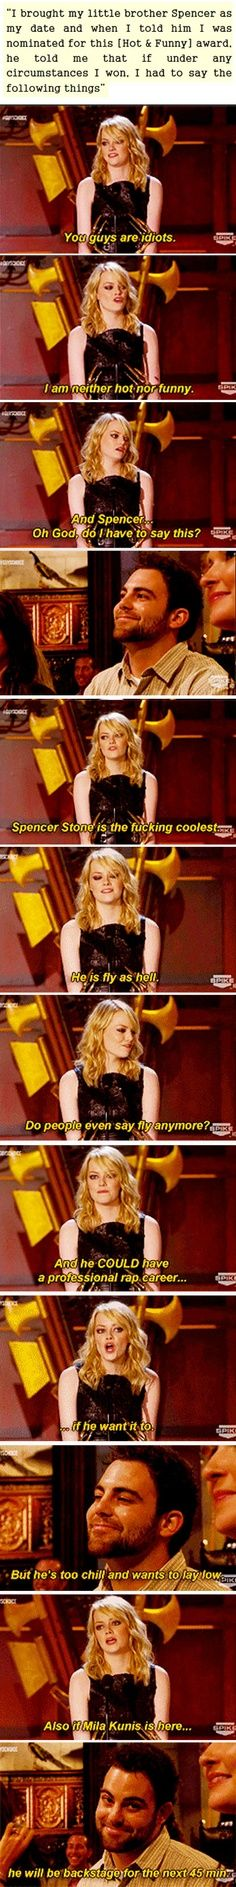 Emma Stone is so great.  She actually did this - I just watched the footage :)